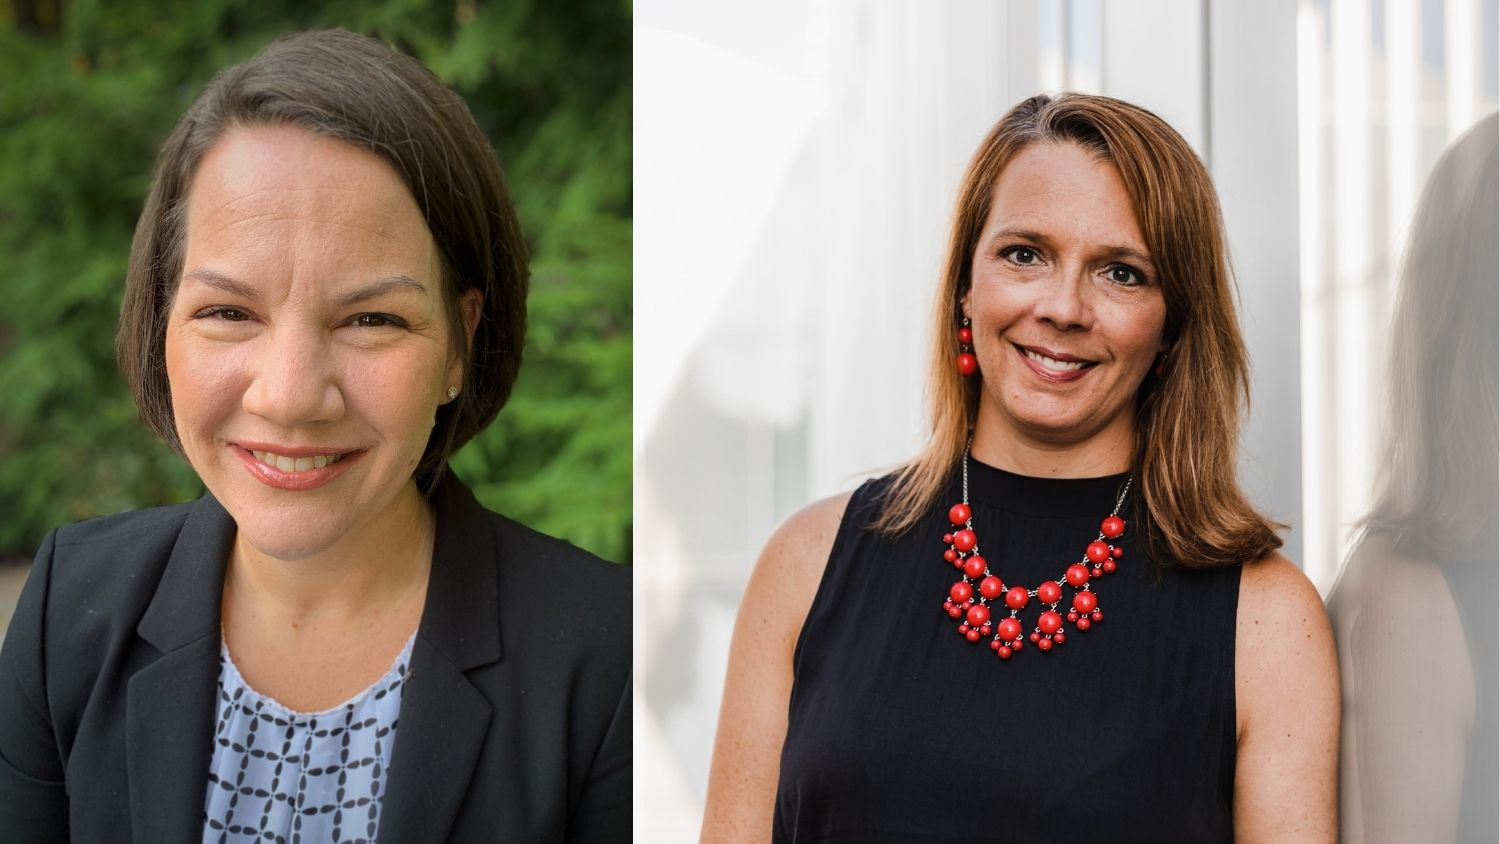 Jennifer Piercy and Cindy Hendren - NC State's Women Leaders in Pulp and Paper - College of Natural Resources News NC State University